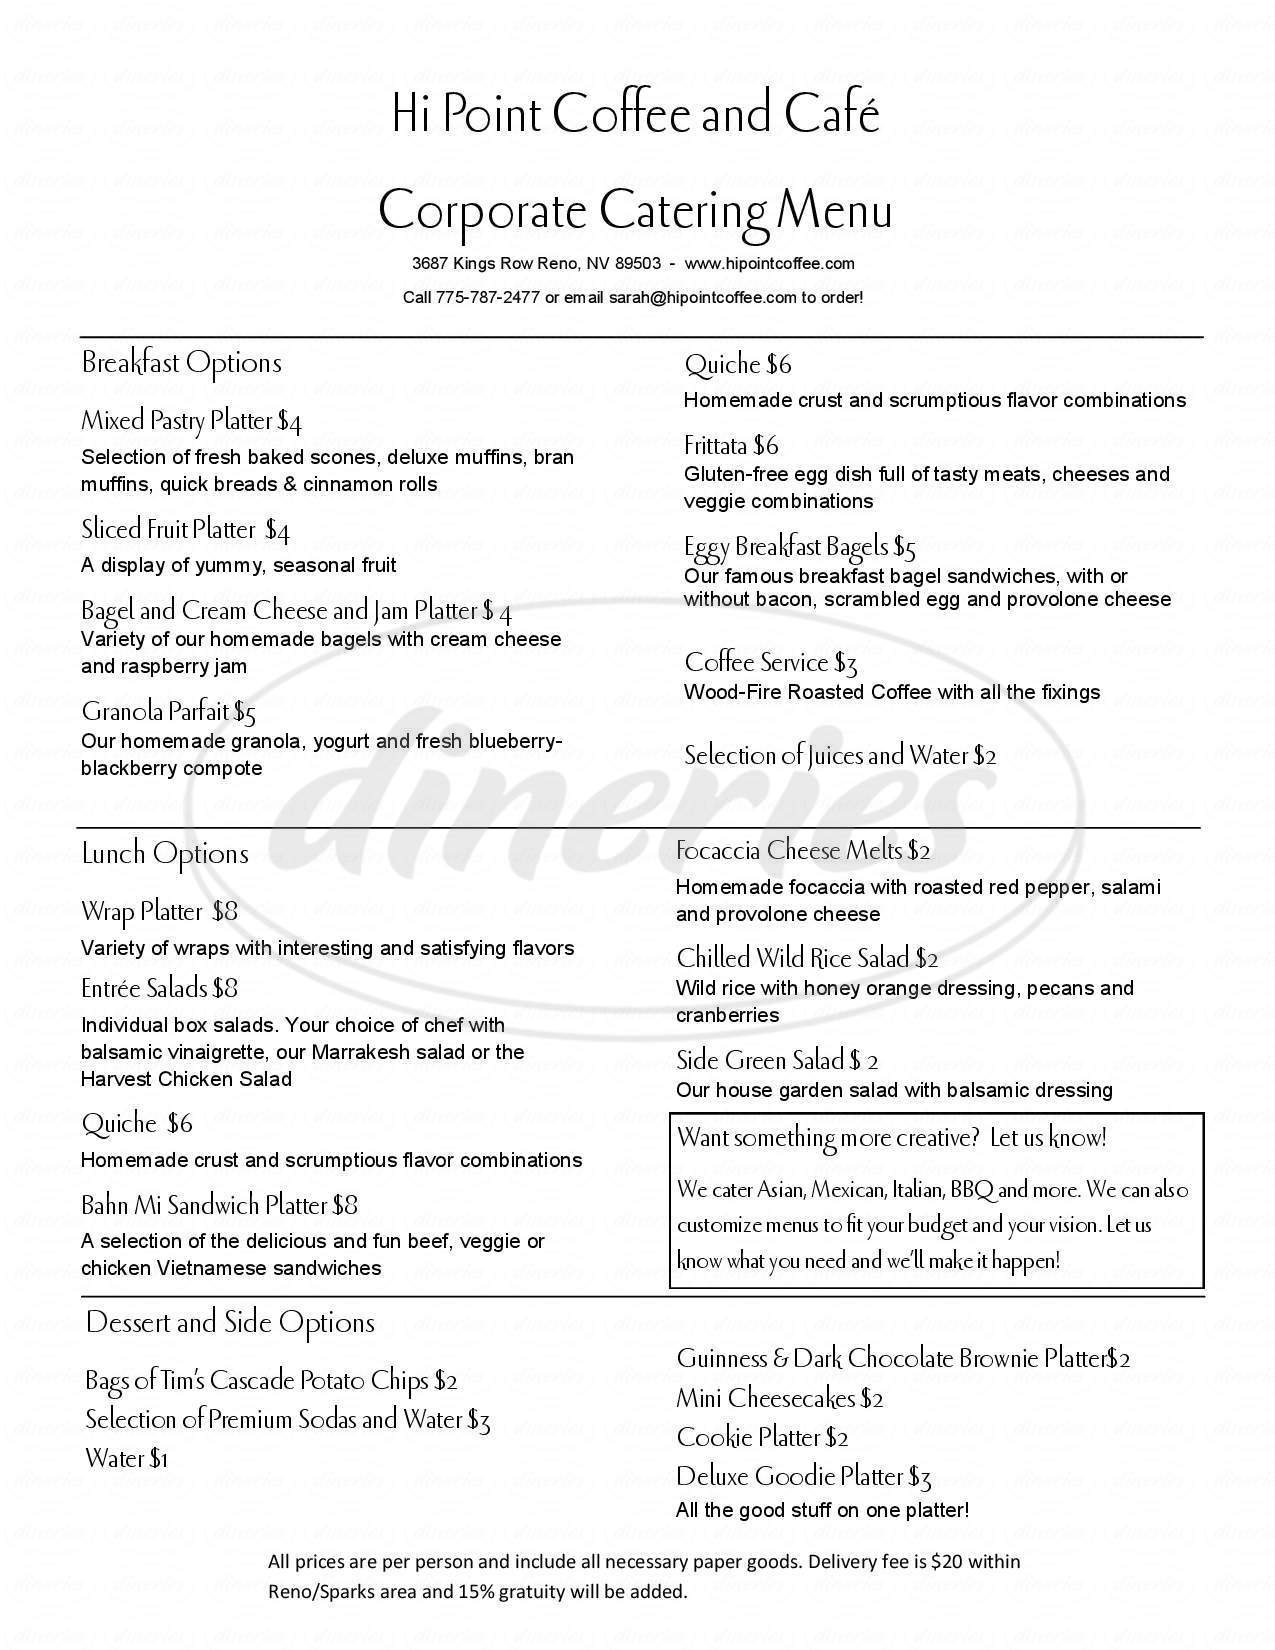 menu for Hi Point Coffee & Cafe